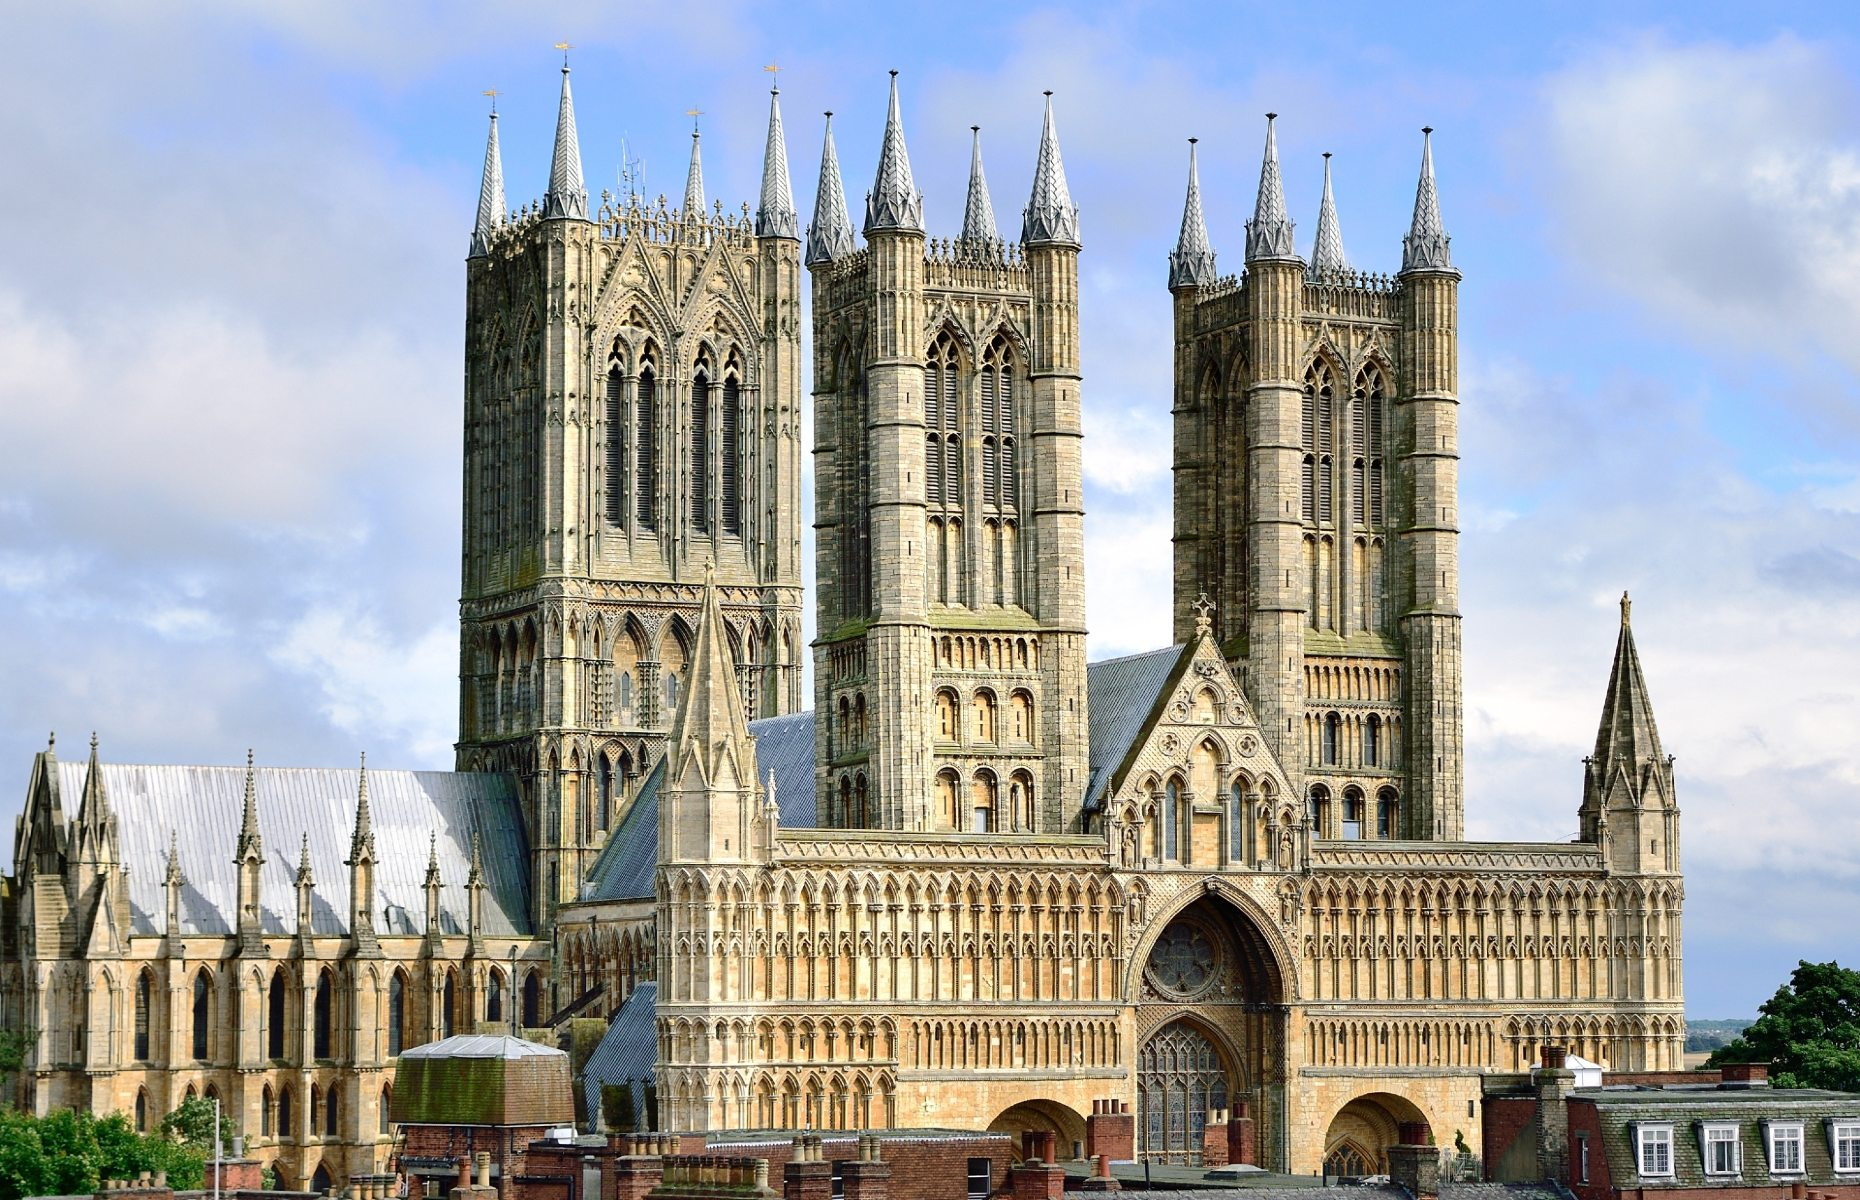 Lincoln Cathedral outside (Image: Lebendigger/Shutterstock)